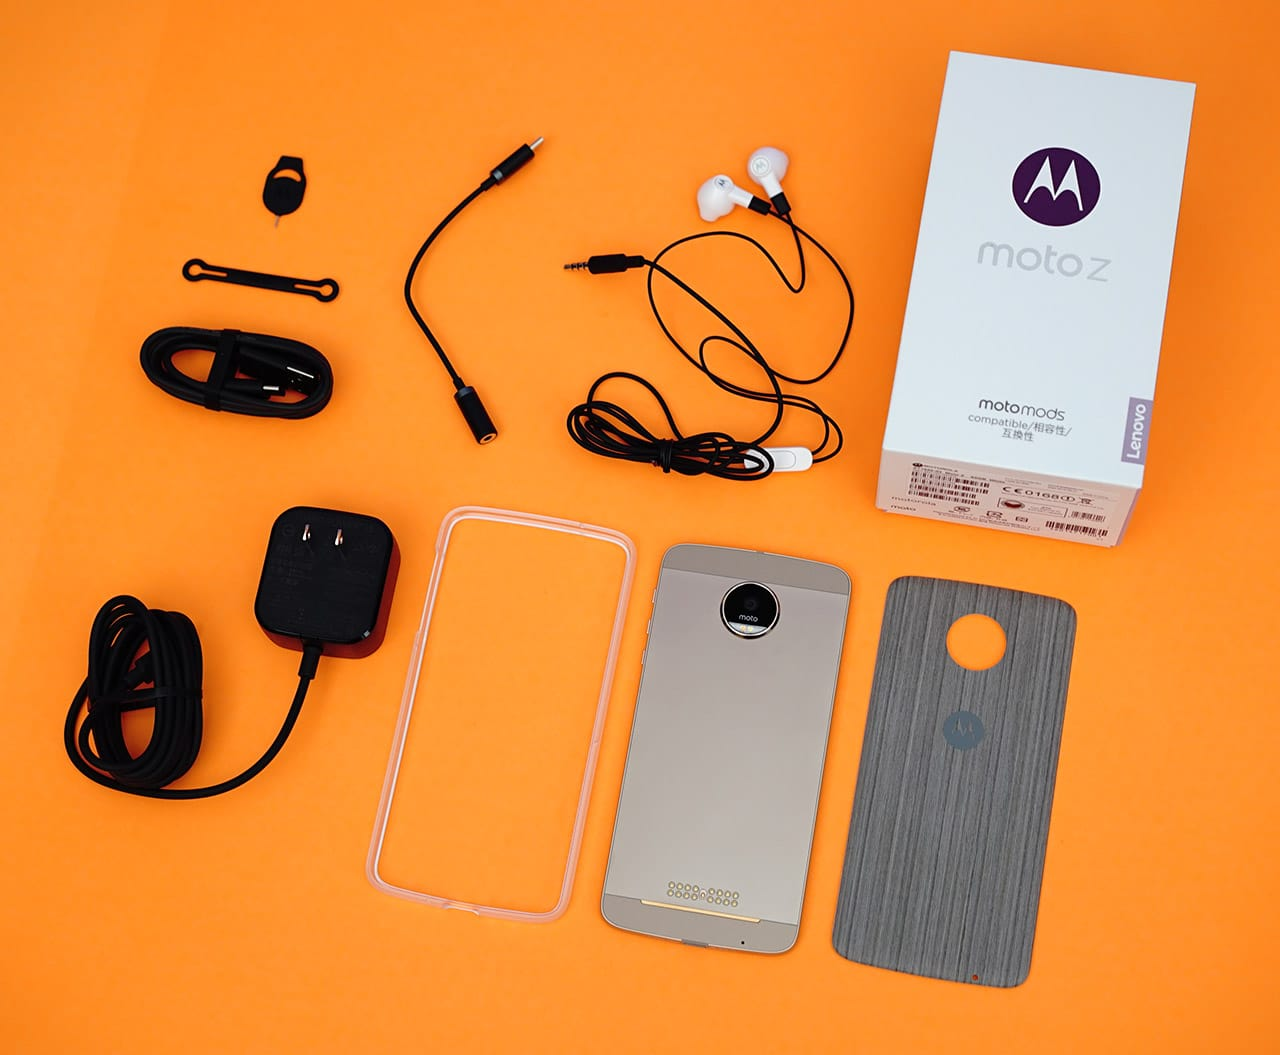 moto-z-hands-on-20161127-05